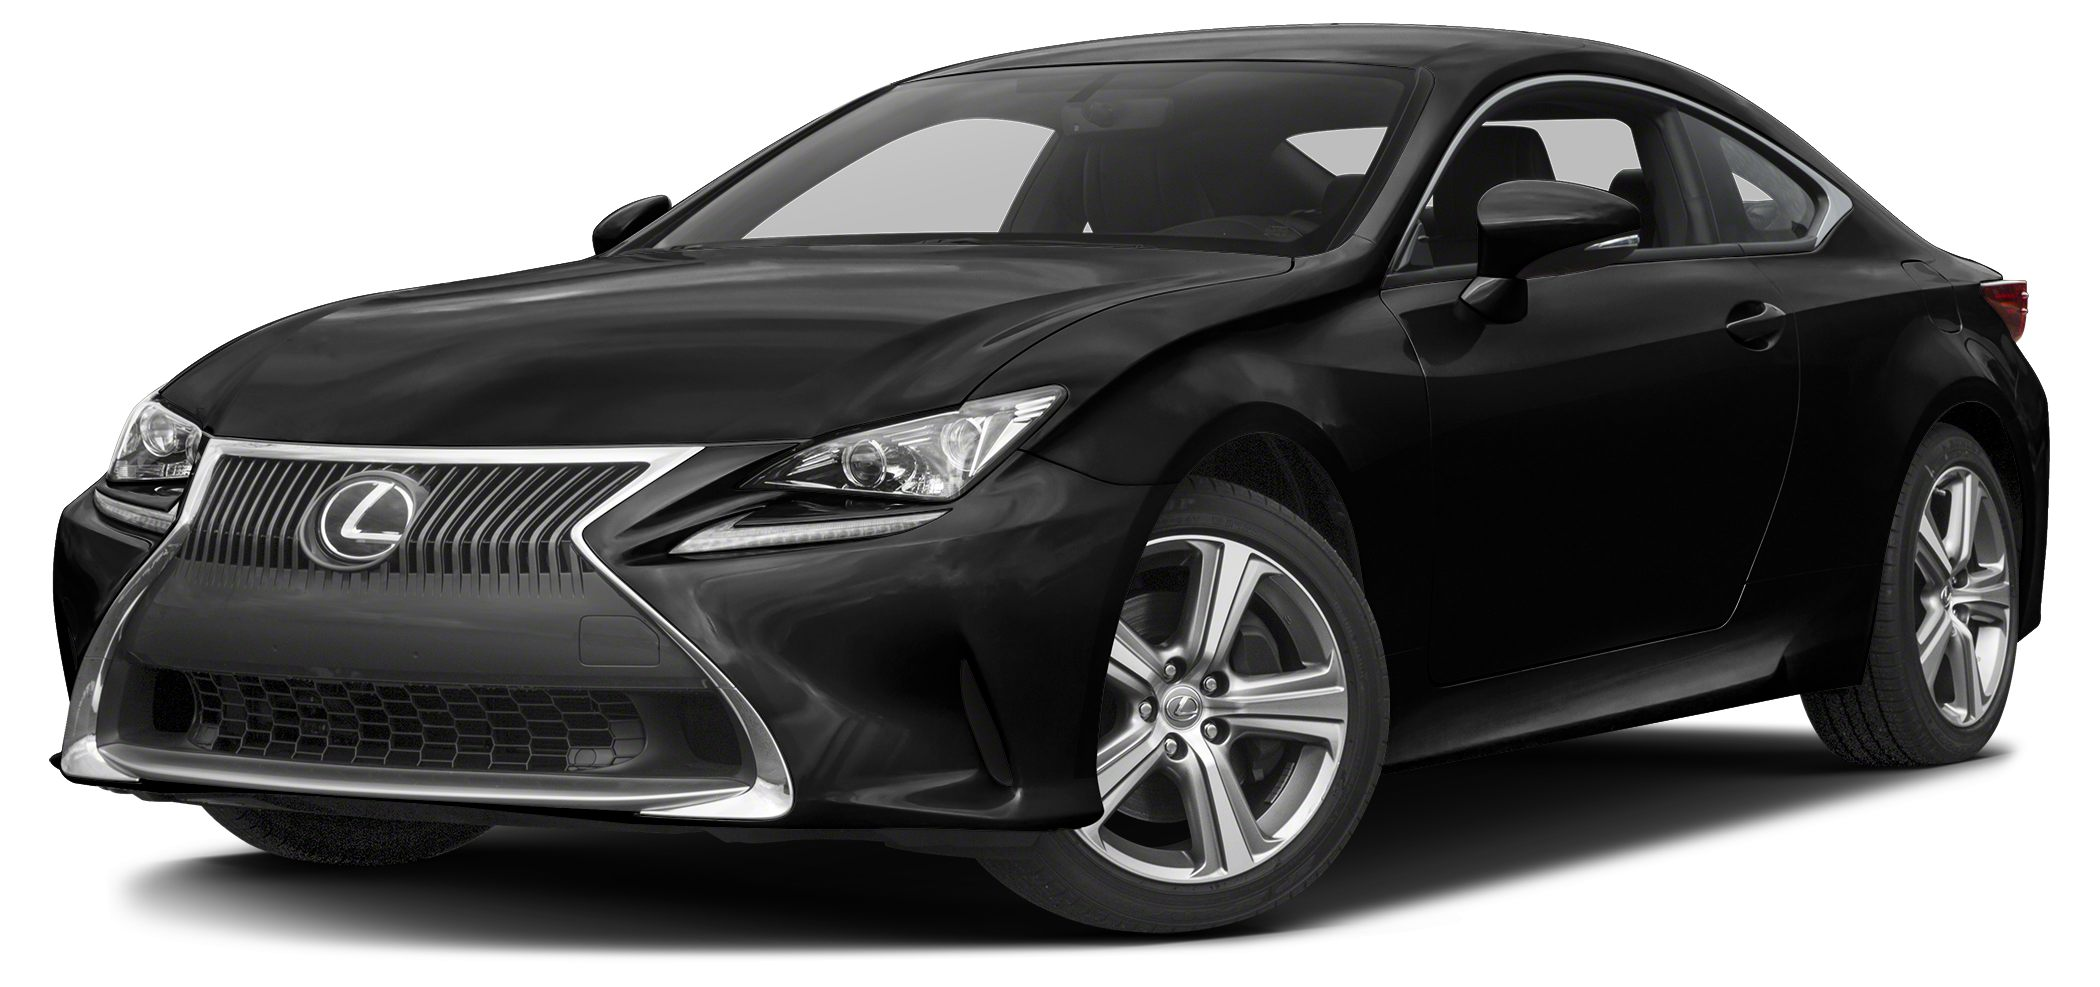 Lexus Rc In Houston TX For Sale ▷ Used Cars Buysellsearch